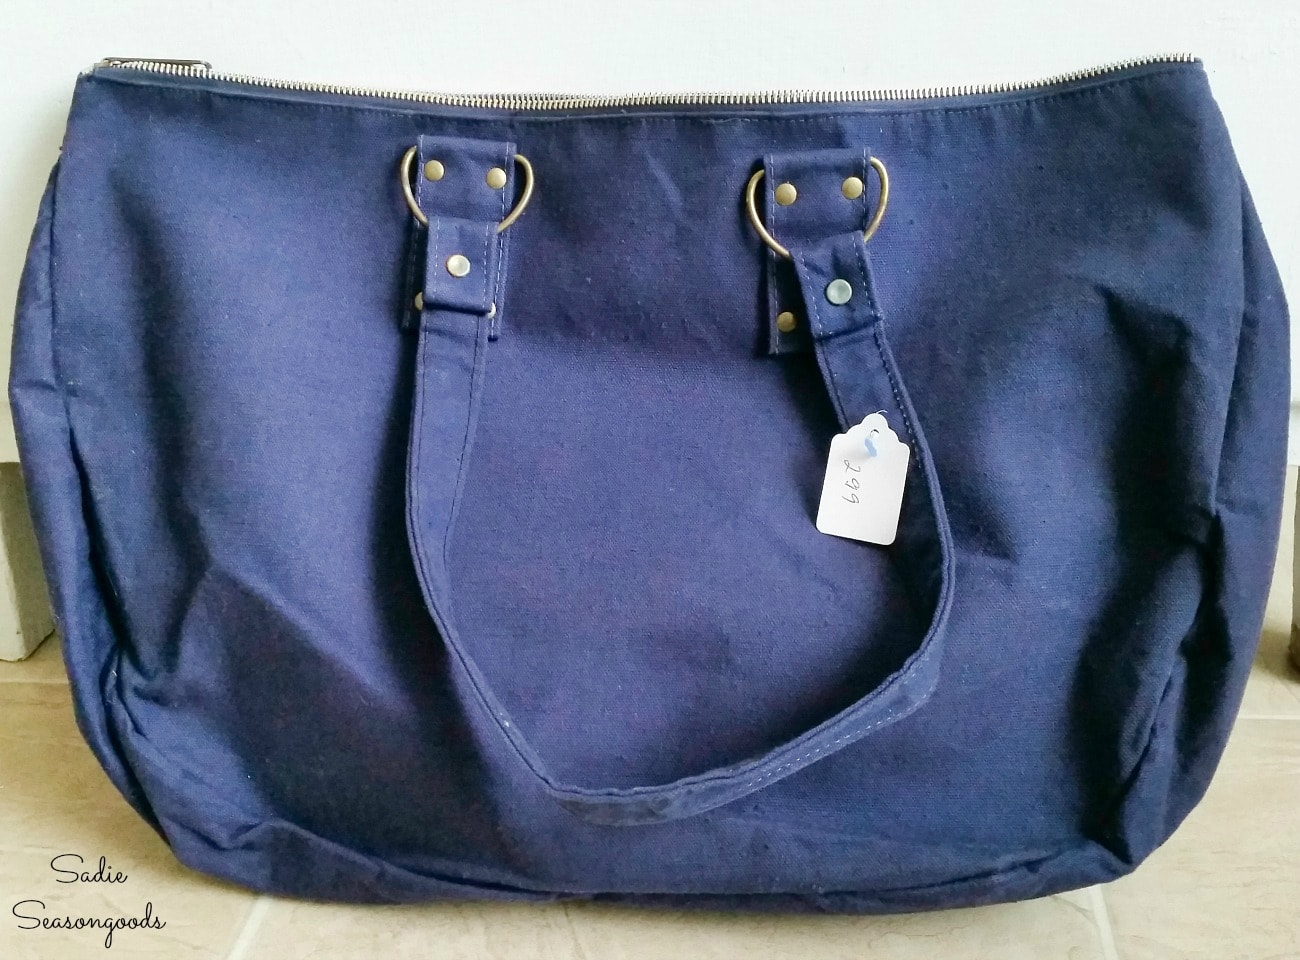 Blue canvas bag from the thrift store